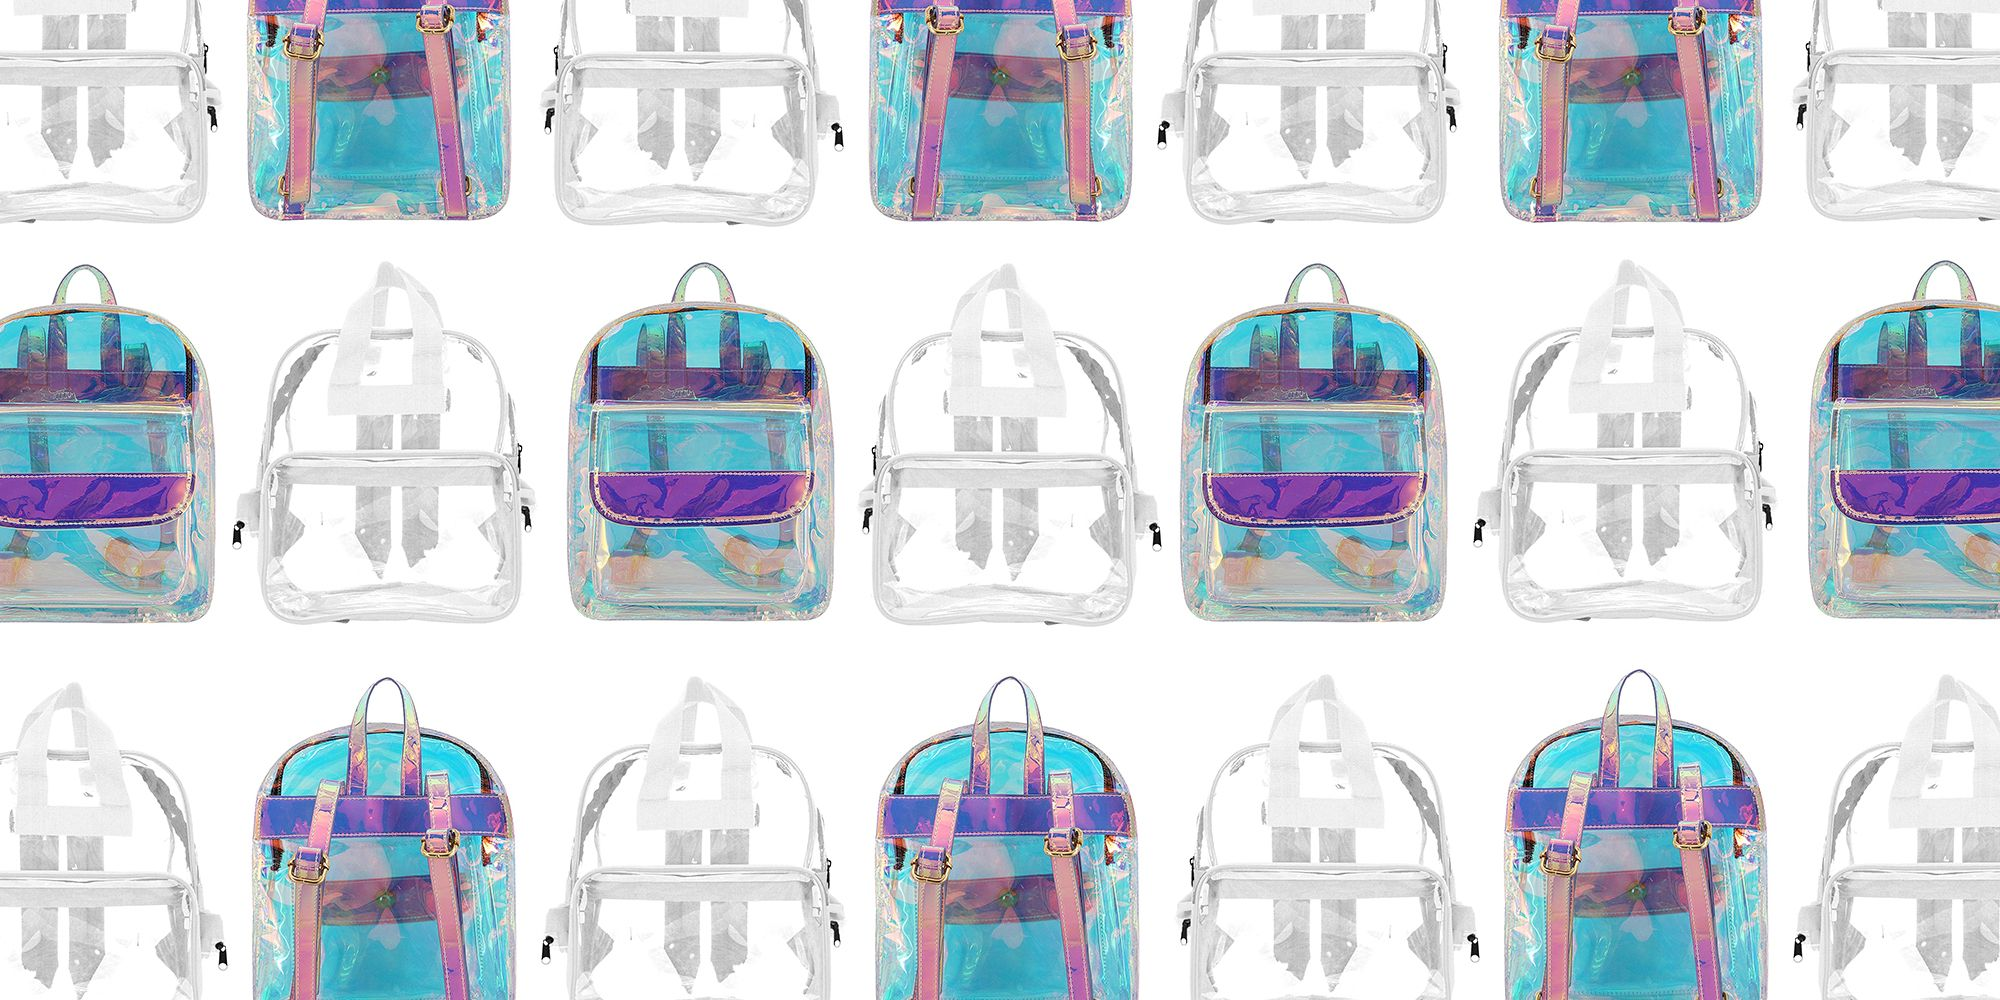 f997ae11926f 9 Cute Clear Backpacks for Back to School 2018 - Clear Bookbags for Kids